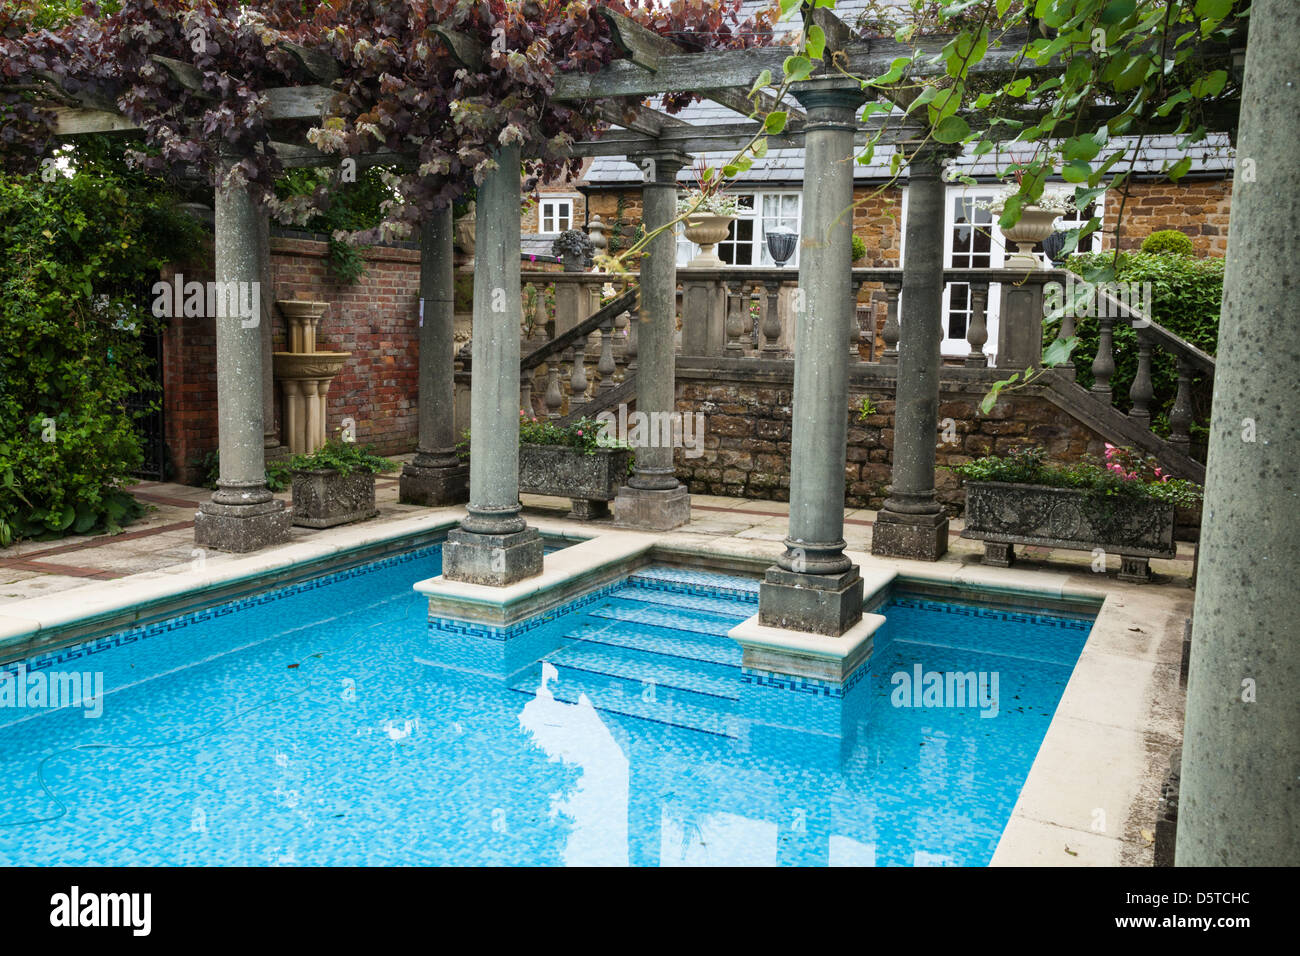 Swimming Pool With Classical Columns And Mosaic Tiles In The Stock Photo Royalty Free Image